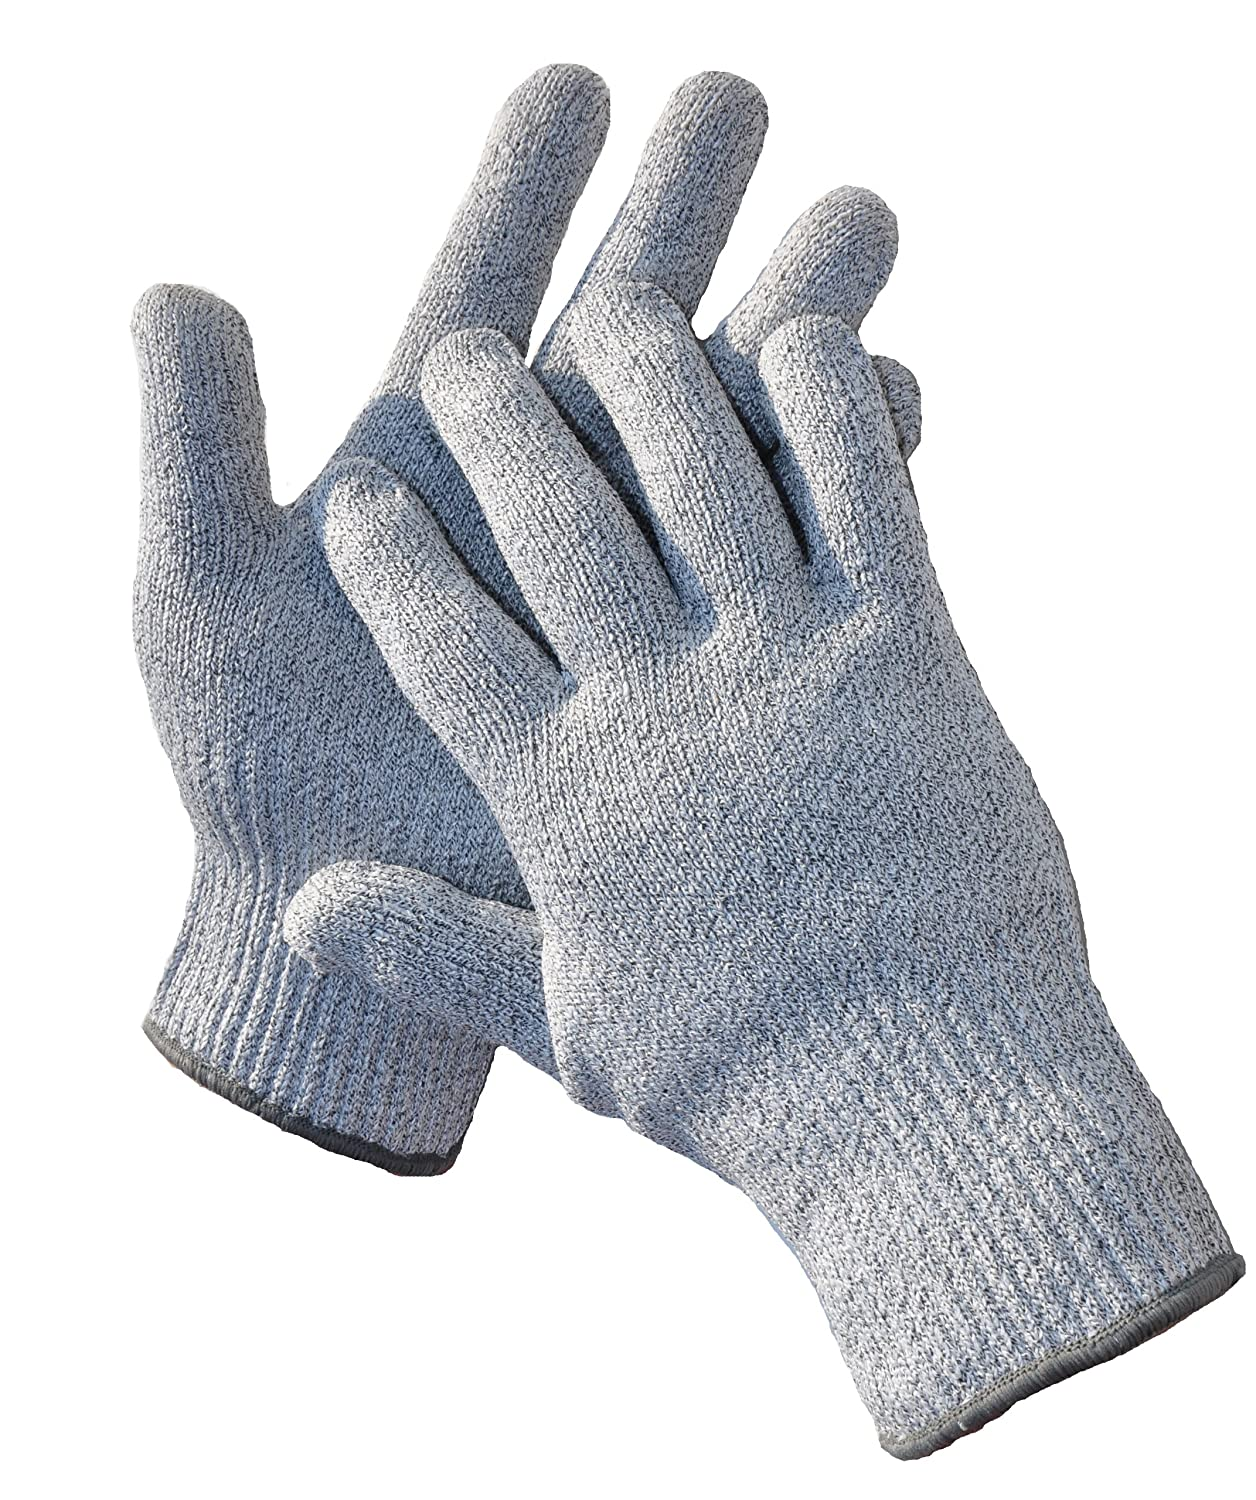 Gifts For Engineers -Resistant Gloves